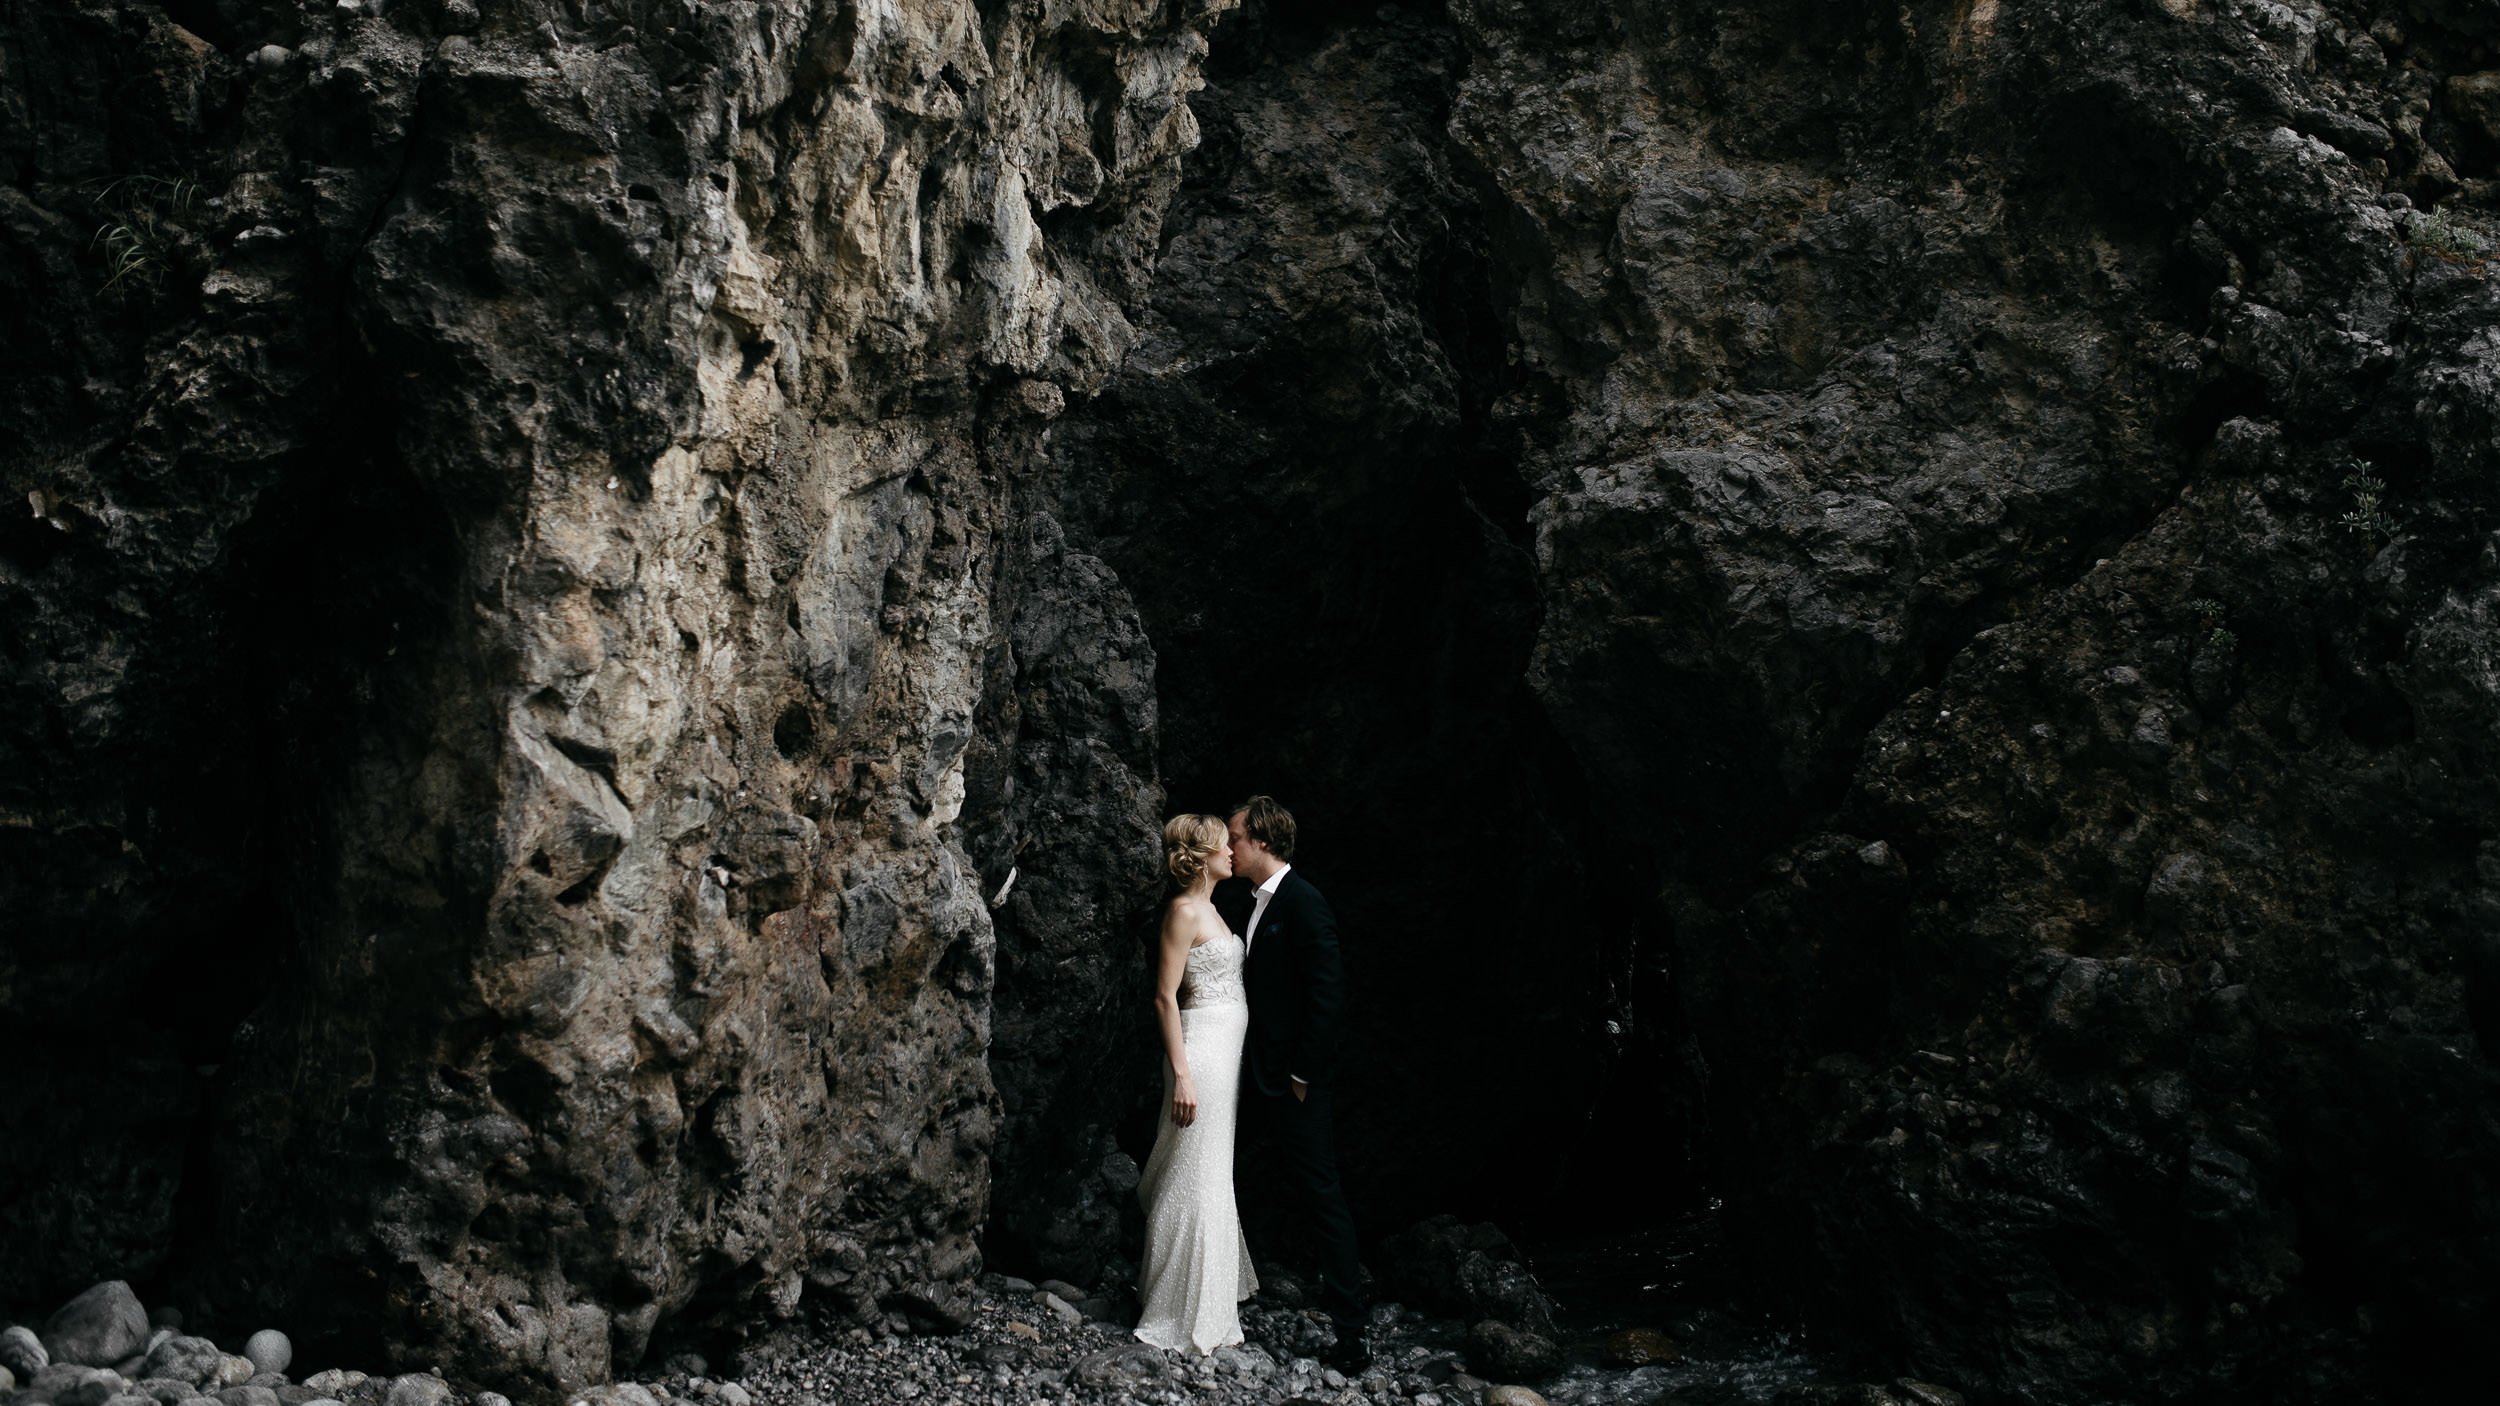 Jean-Laurent Gaudy, Varenna Destination Wedding Elopement Photographer.